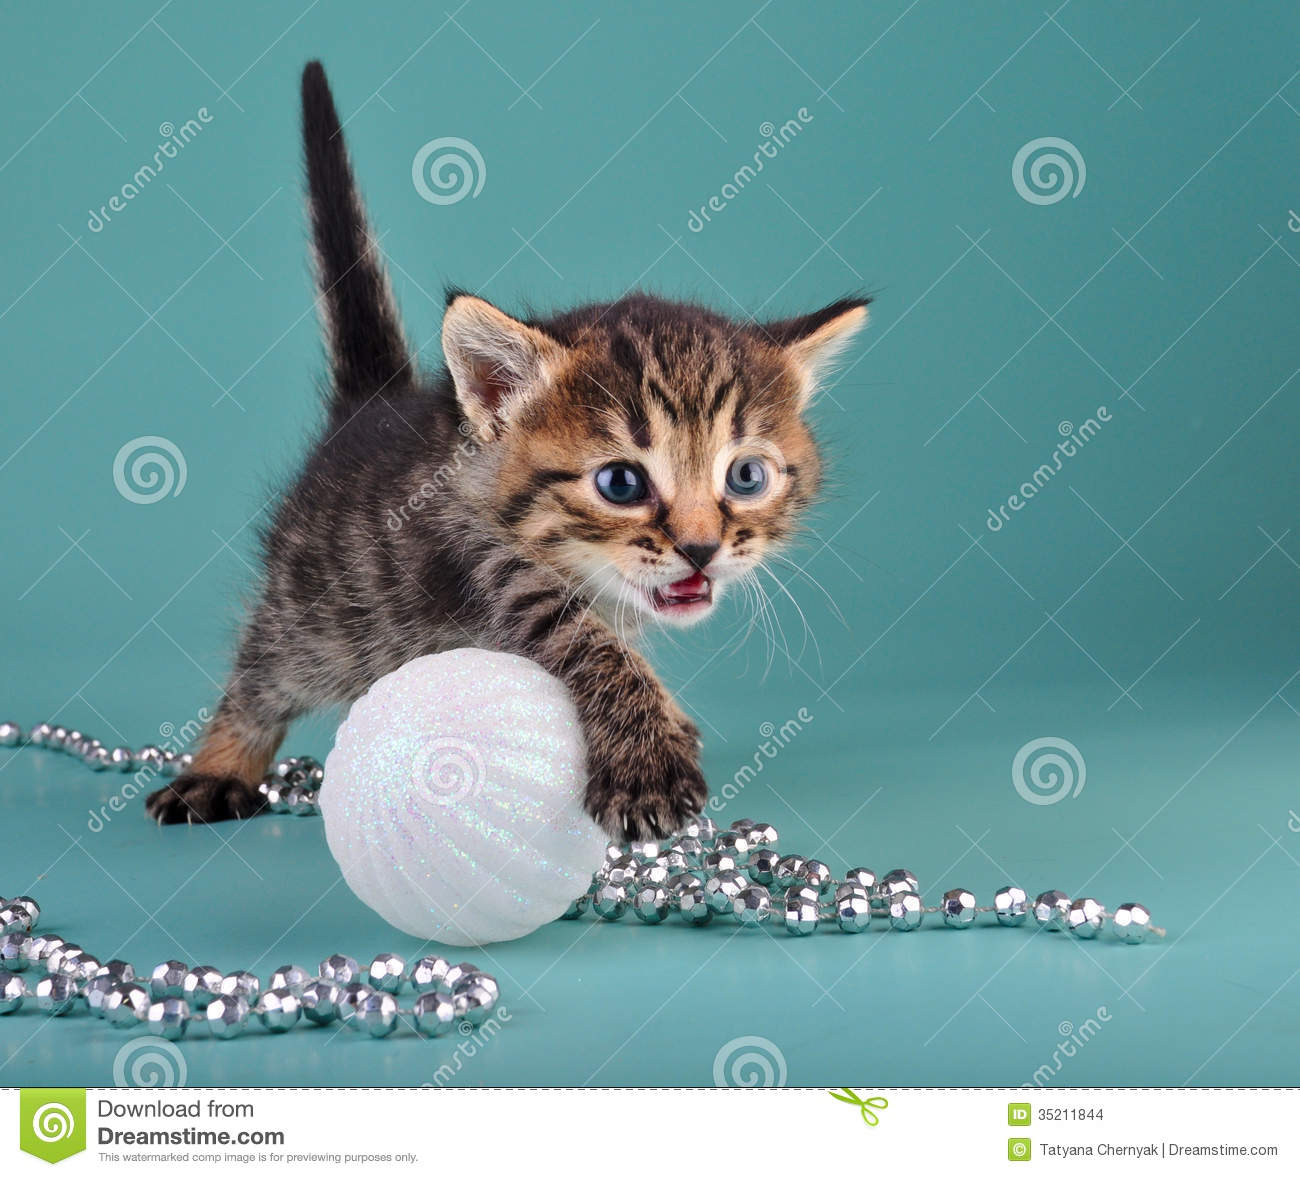 Pictures Of Christmas Stuff small kitten among christmas stuff stock images - image: 35211844